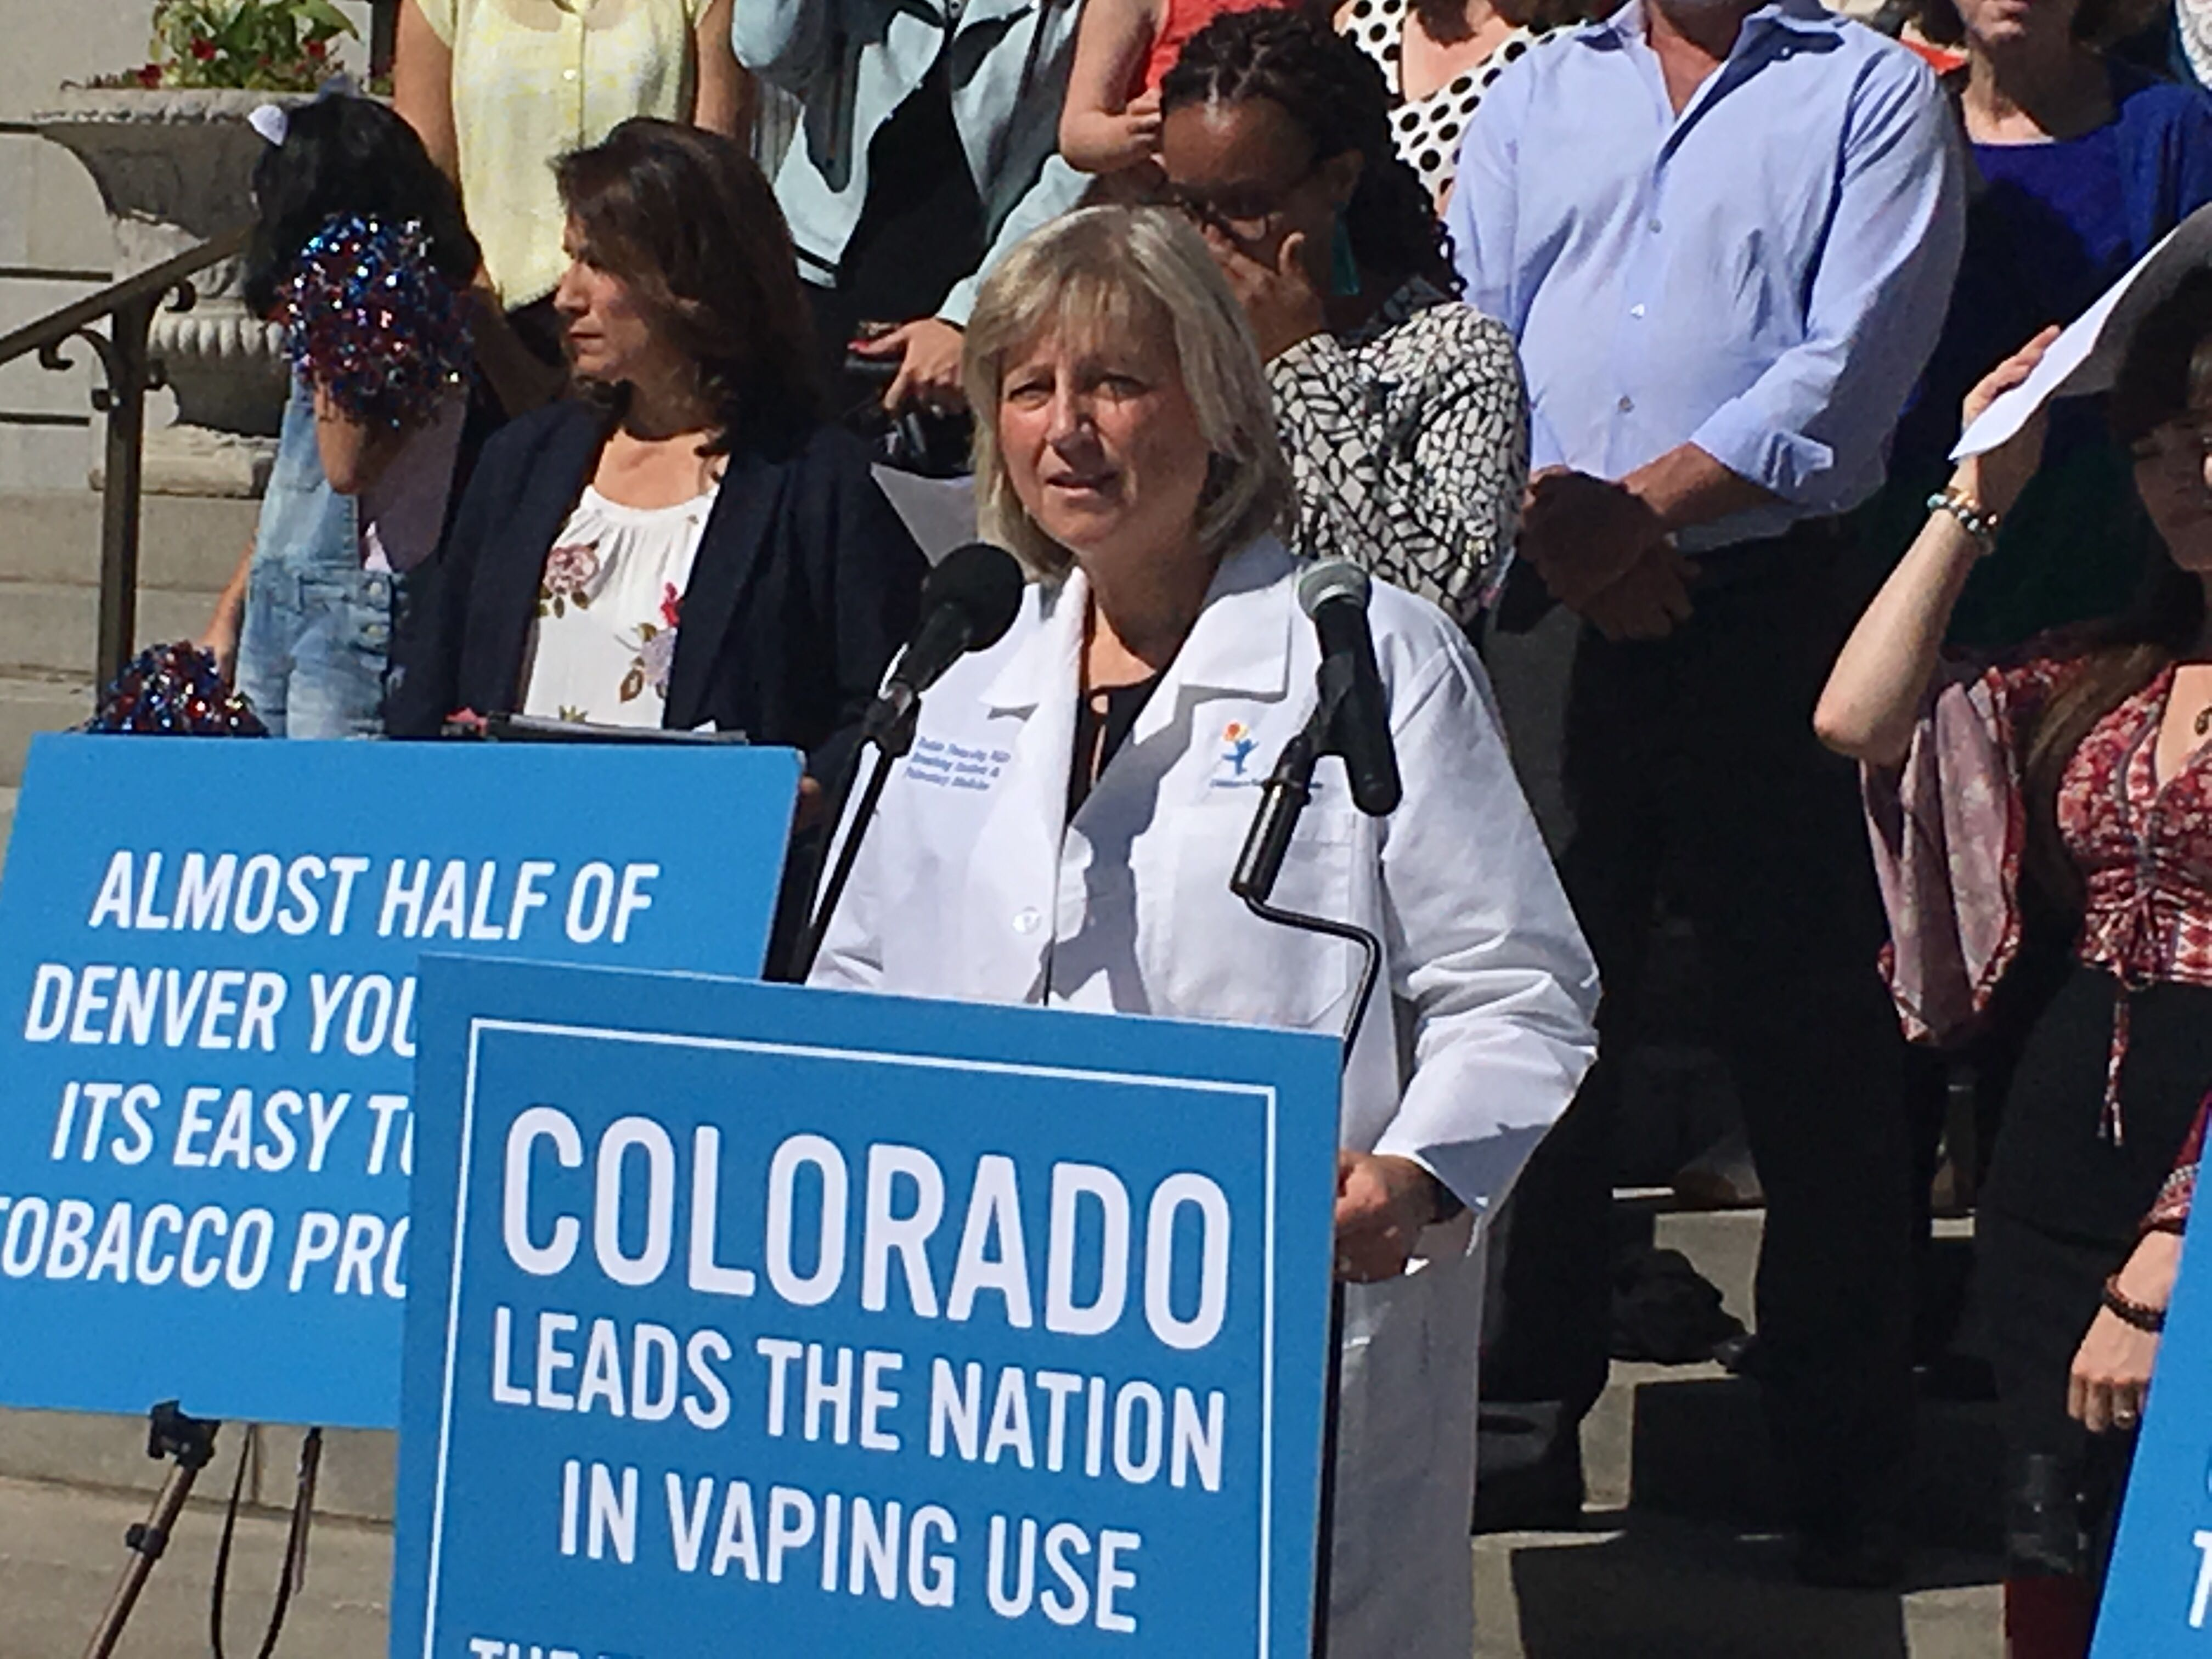 Dr. Robin Deterding, who's in charge of pulmonary pediatric medicine at Children's Hospital Colorado, speaks at a press conference Aug. 13, 2019, in favor of Denver's proposed tobacco reforms.